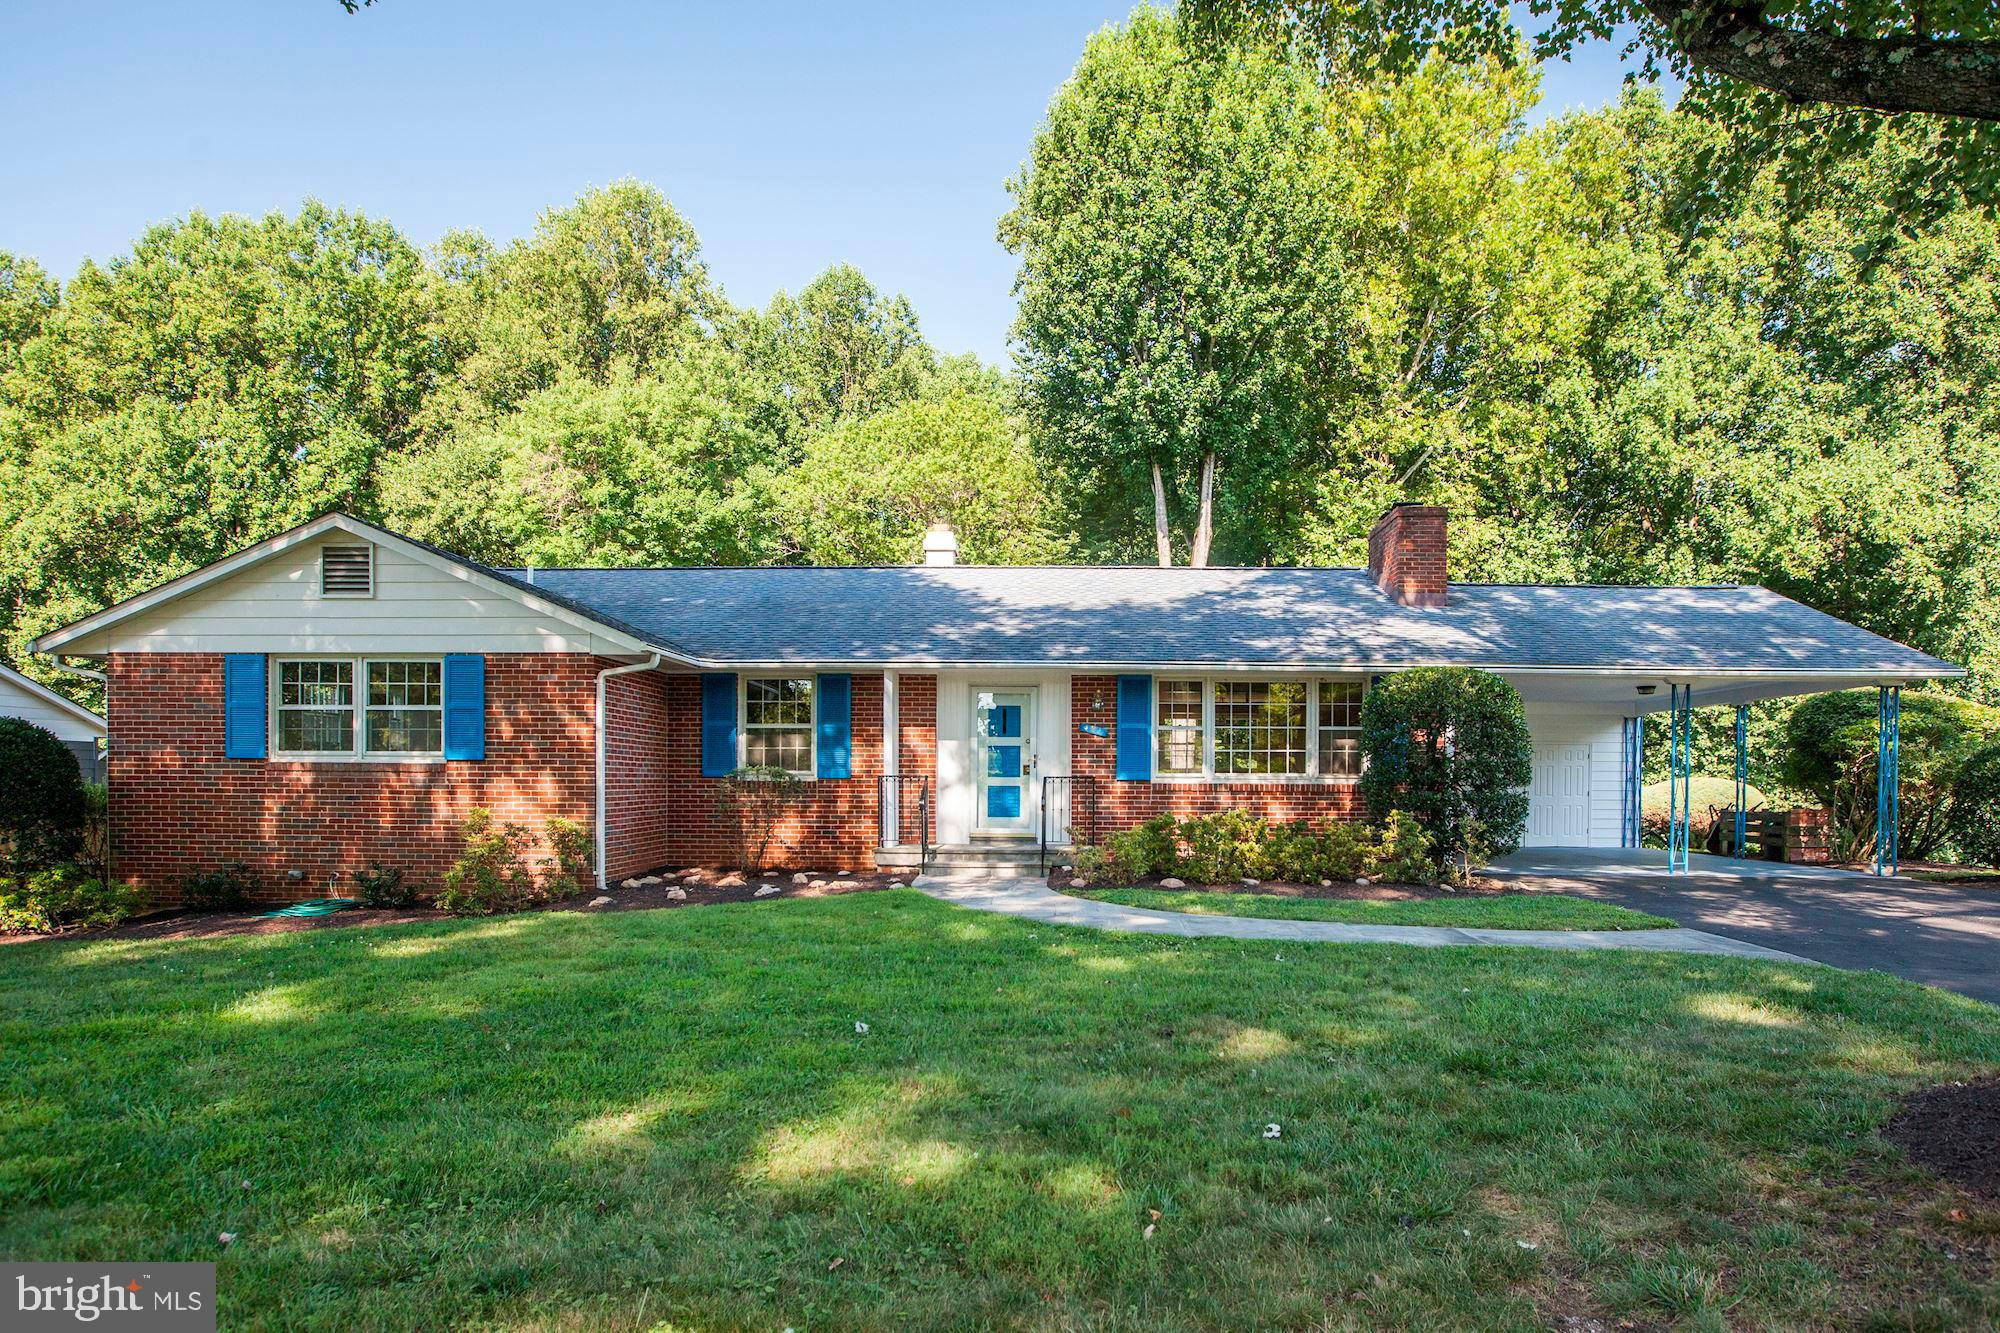 421 SCOTT DRIVE, SILVER SPRING, MD 20904